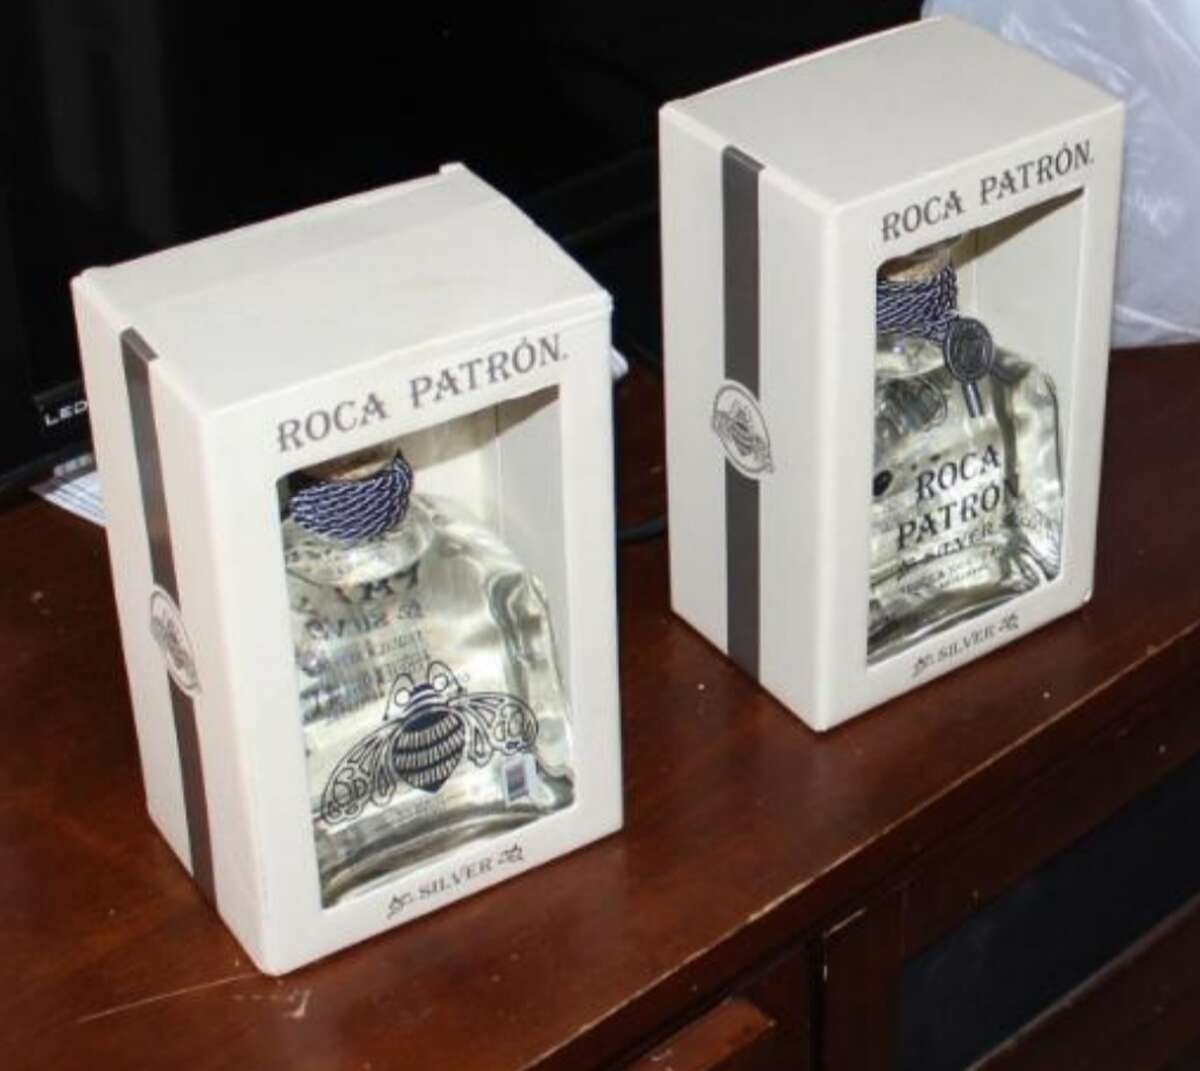 Police recovered 29 cases of Roca Patron Silver worth $11,310 and arrested a man who is allegedly linked to the cargo theft.